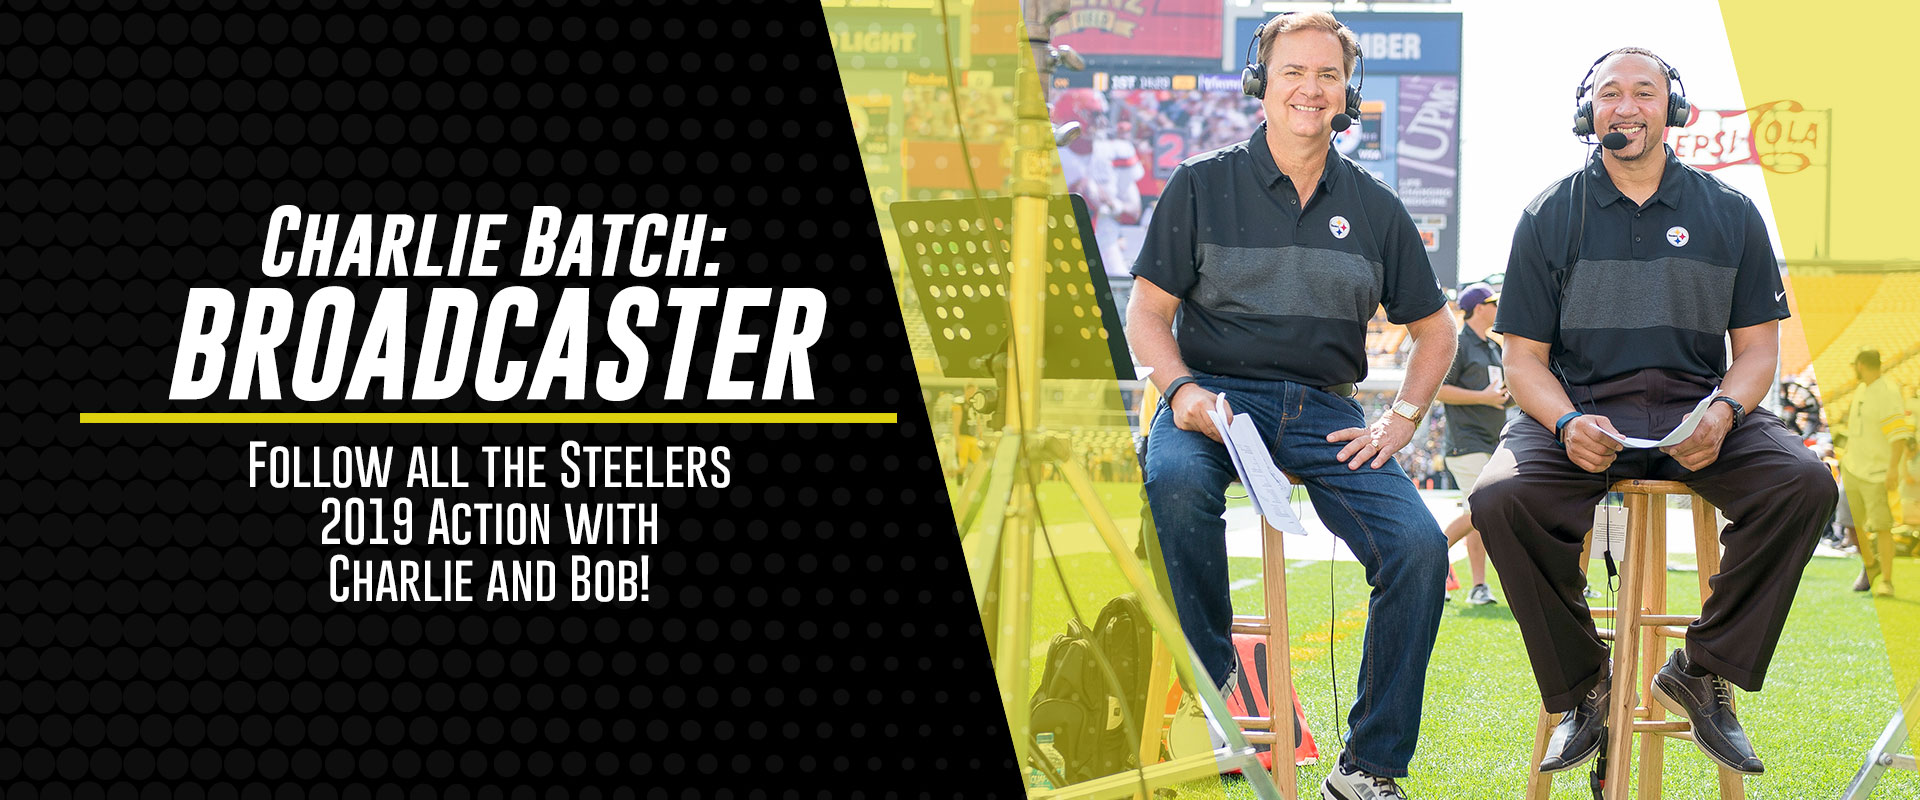 Charlie Batch Broadcaster Slider